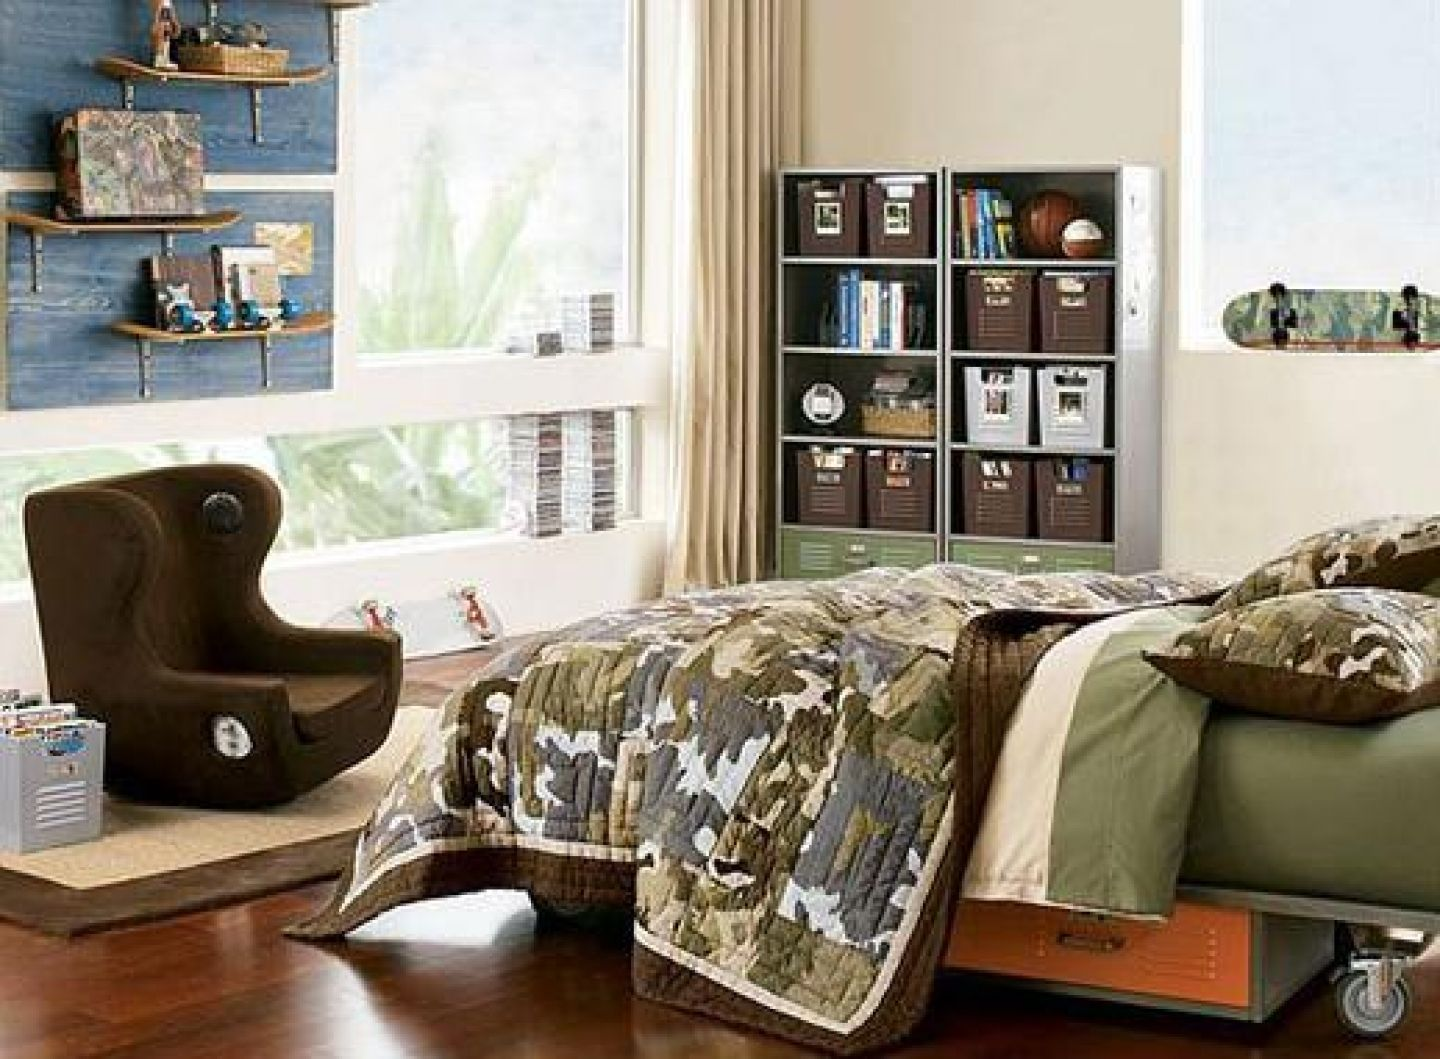 Teenage boys bedroom ideas - Teenageboys Bedroom Ideas Bedroom Ideas For Teenage Boys Kids Bedroom Decorating Ideas